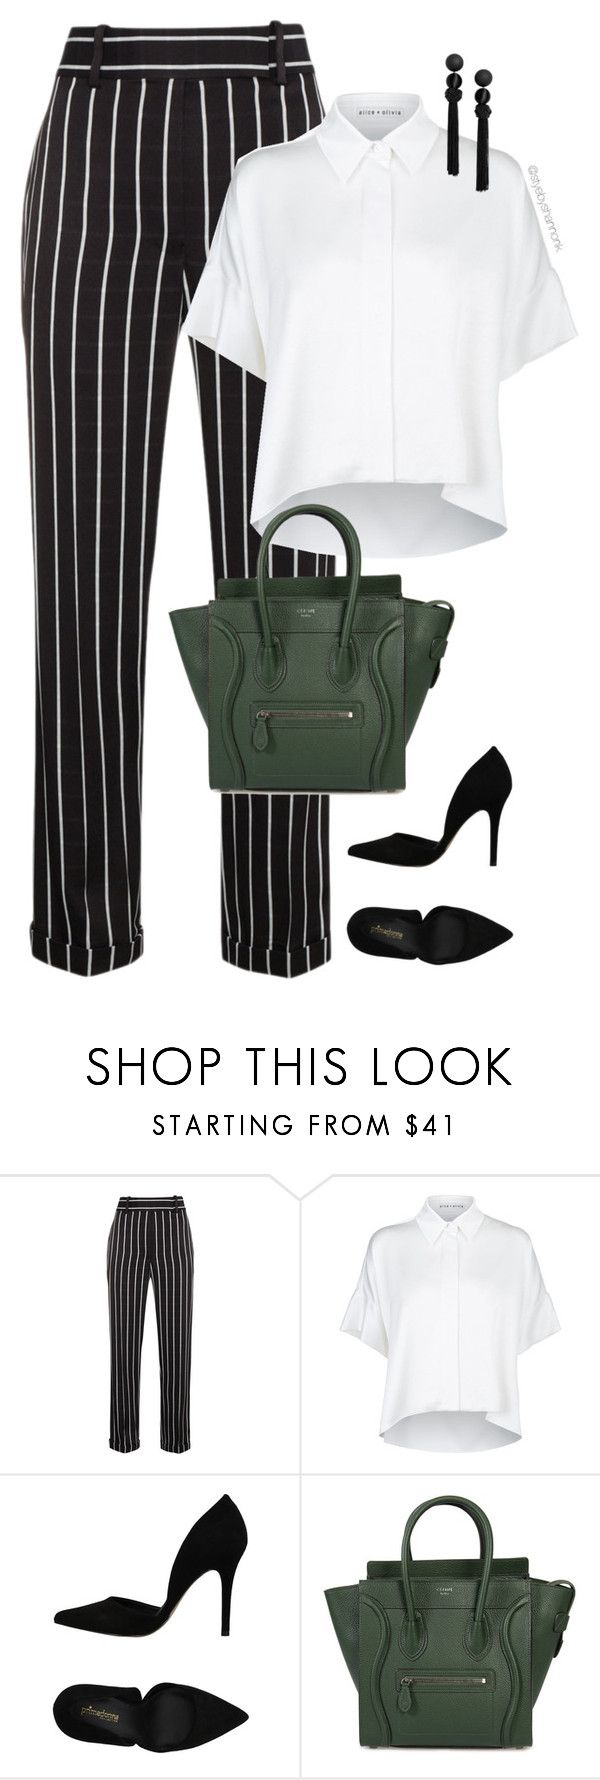 """Stripes"" by stylebyshannonk ❤ liked on Polyvore featuring Haider Ackermann, Alice + Olivia, PrimaDonna and CÉLINE"